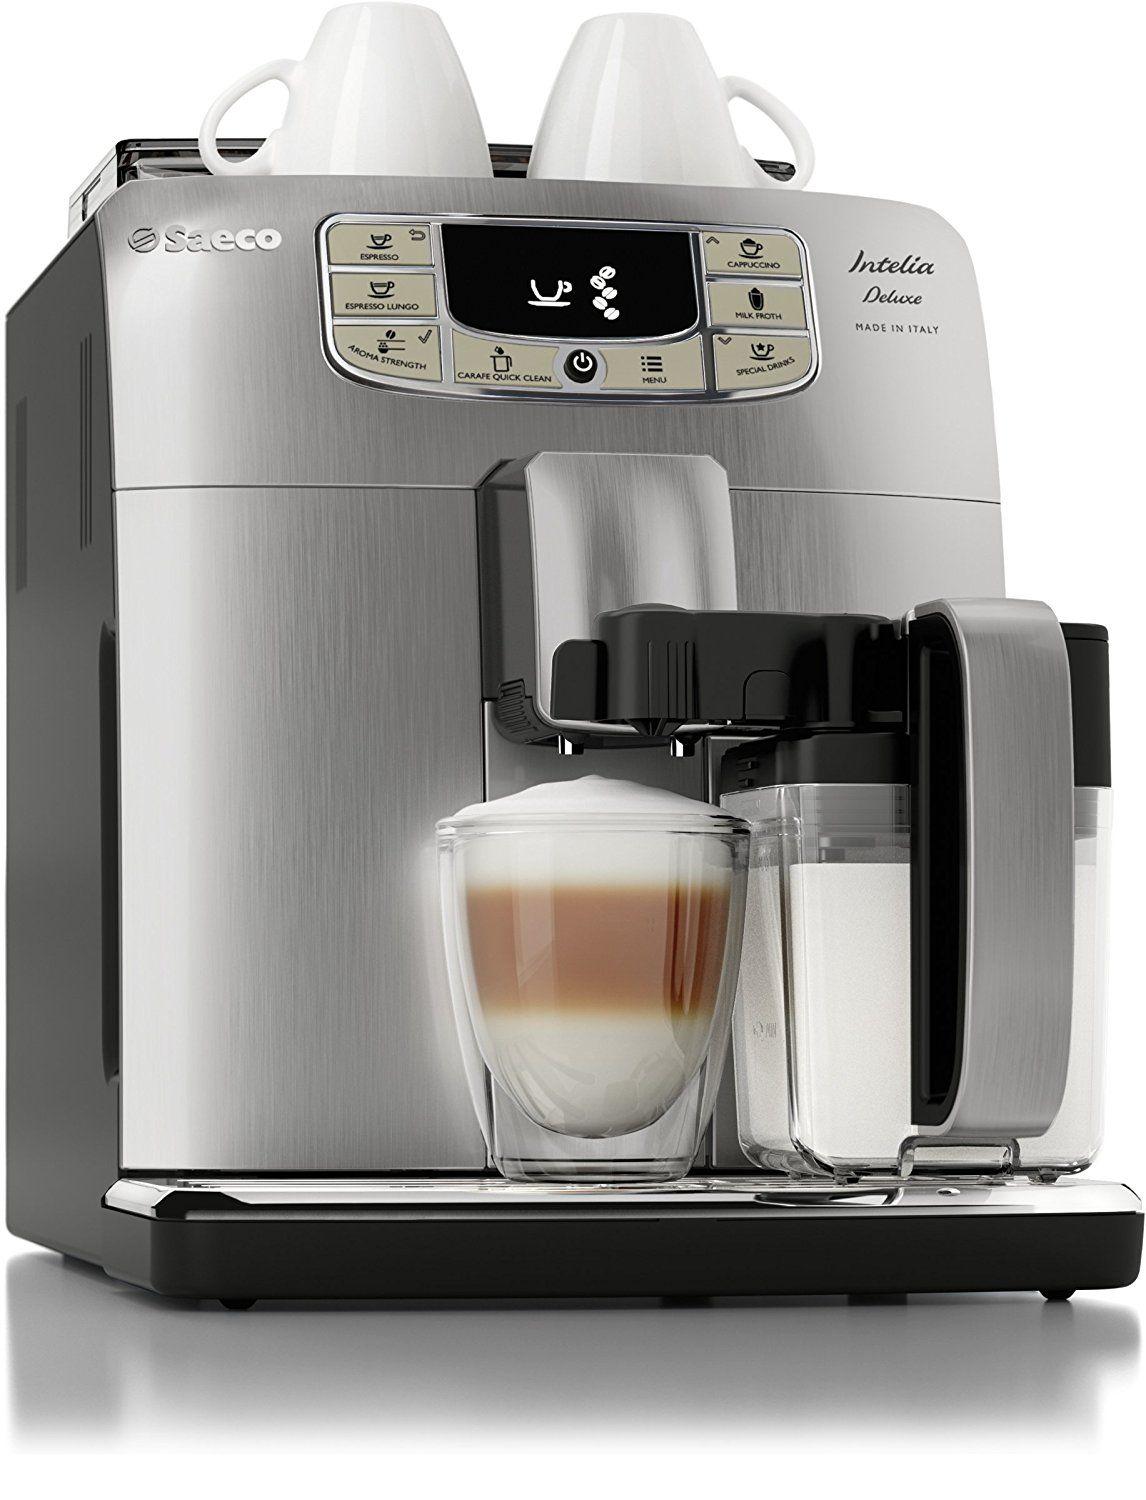 Best Italian coffee machines brands of 2017 Coffee maker